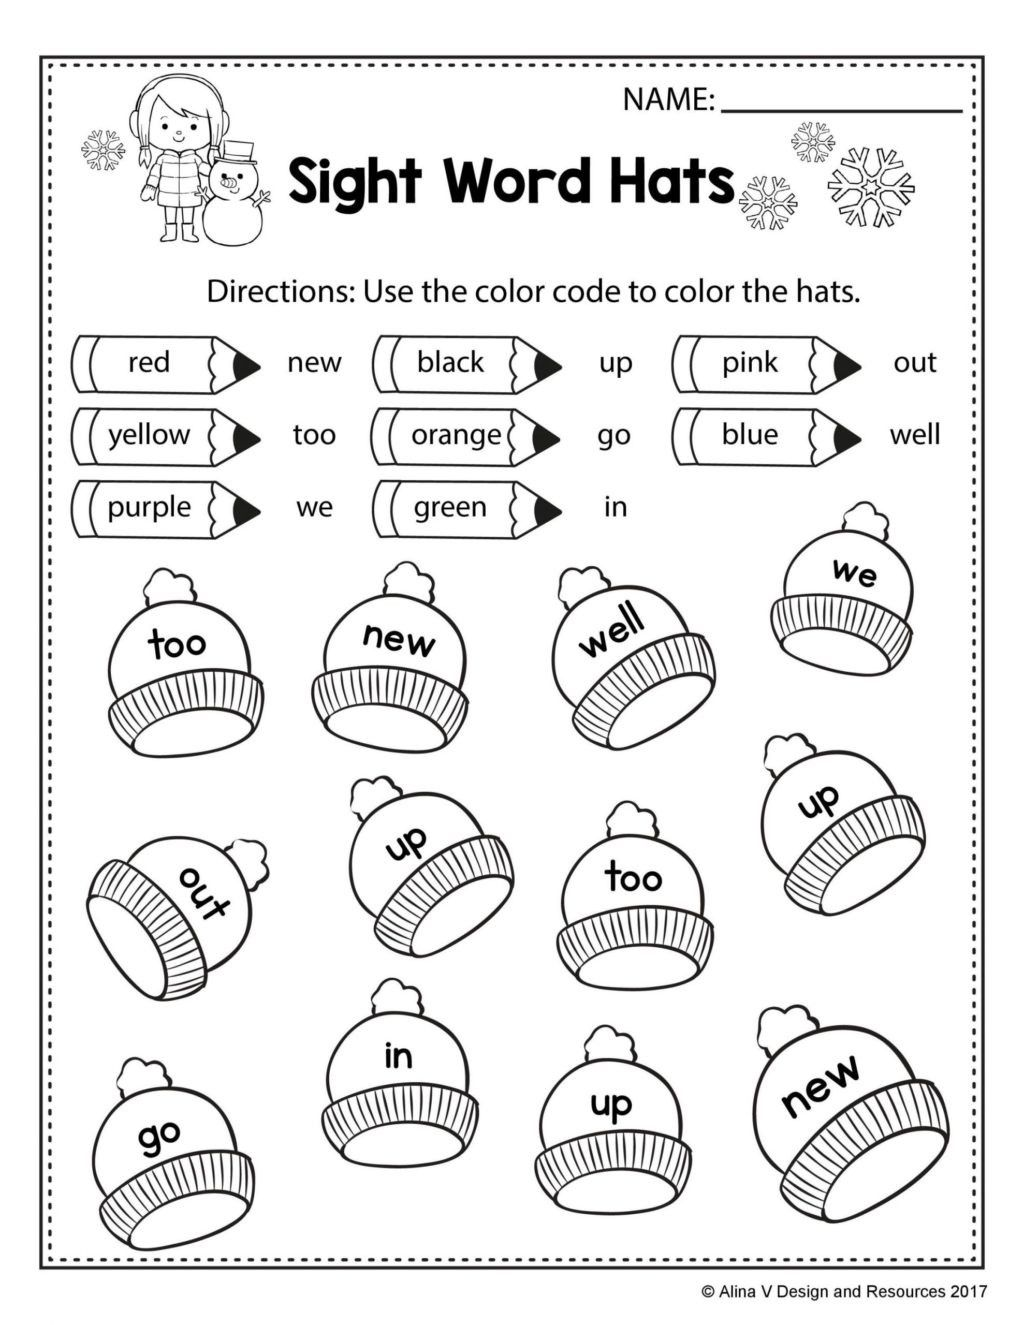 2nd Grade Math Challenge Worksheets Worksheet 2nd Gradeh Workshe In 2020 Kindergarten Worksheets Sight Words Kindergarten Worksheets Printable Sight Words Kindergarten